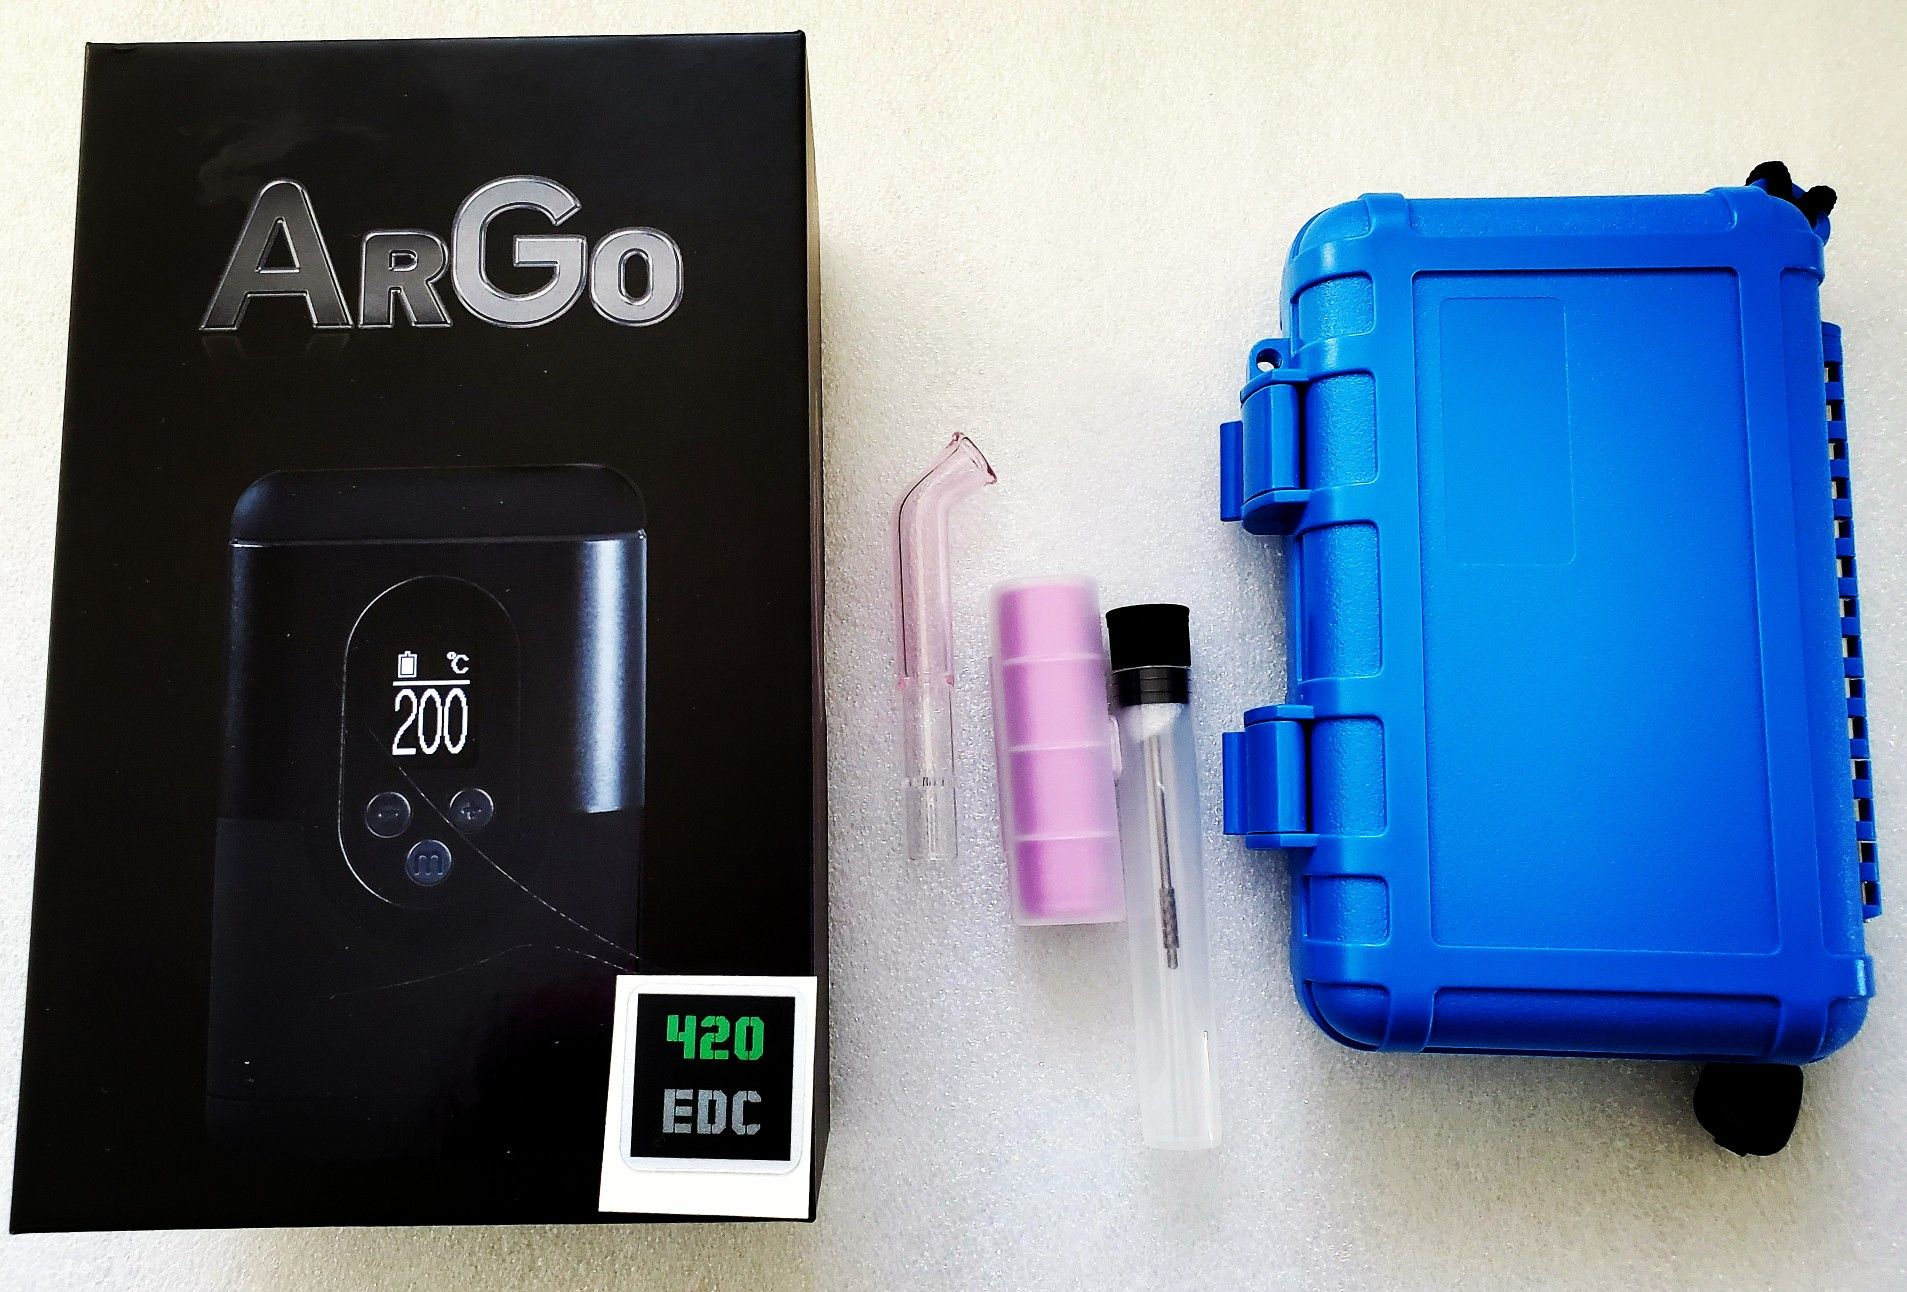 Another Colorful Arizertech Argo With 420edcbonusbox Getting